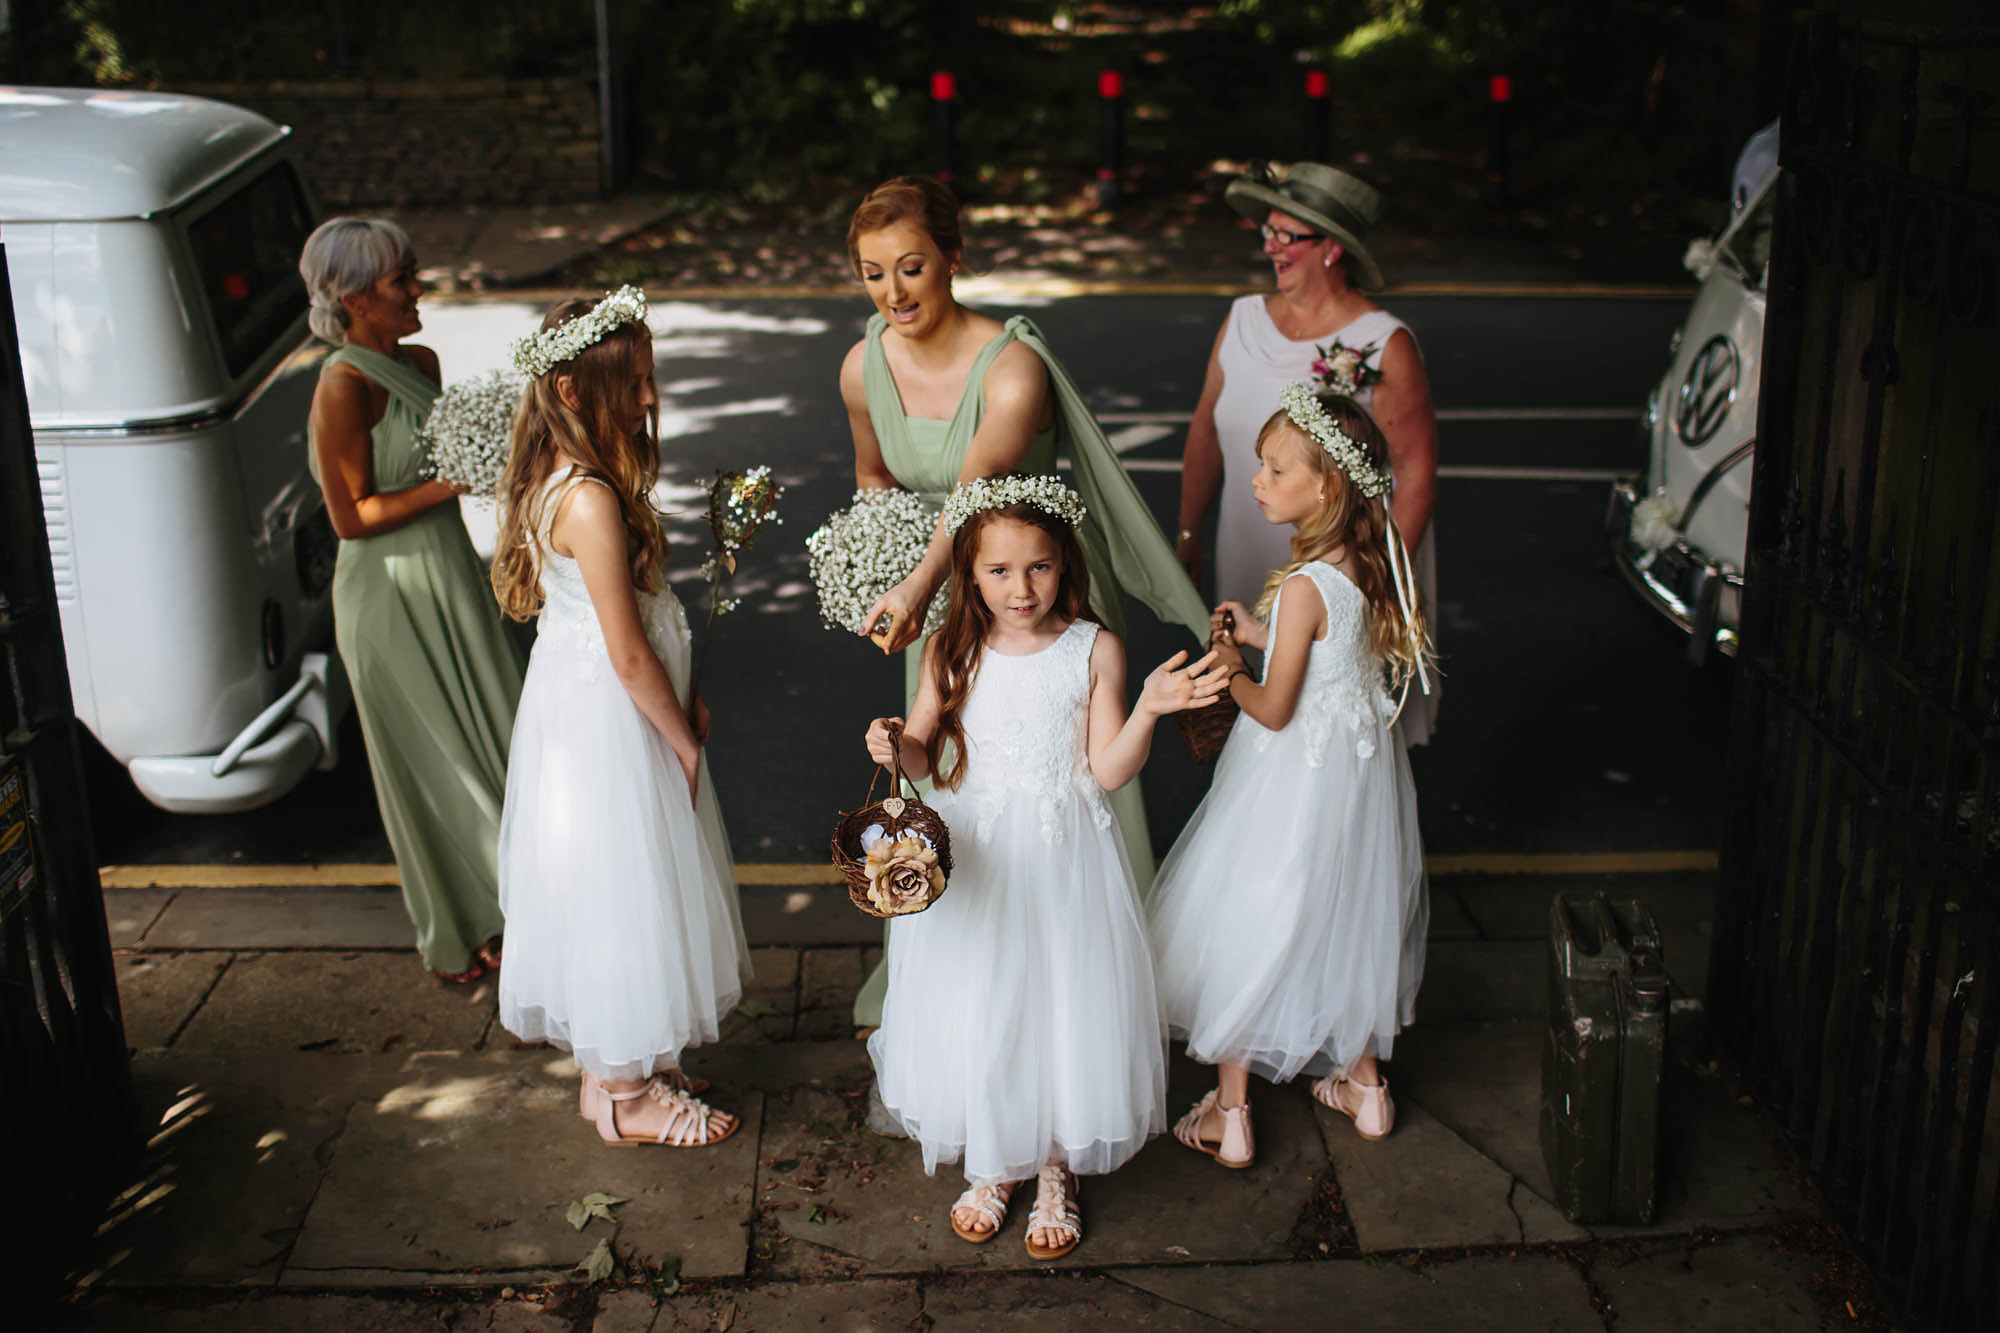 Bridesmaids and flower girls arrive at a wedding in Manchester